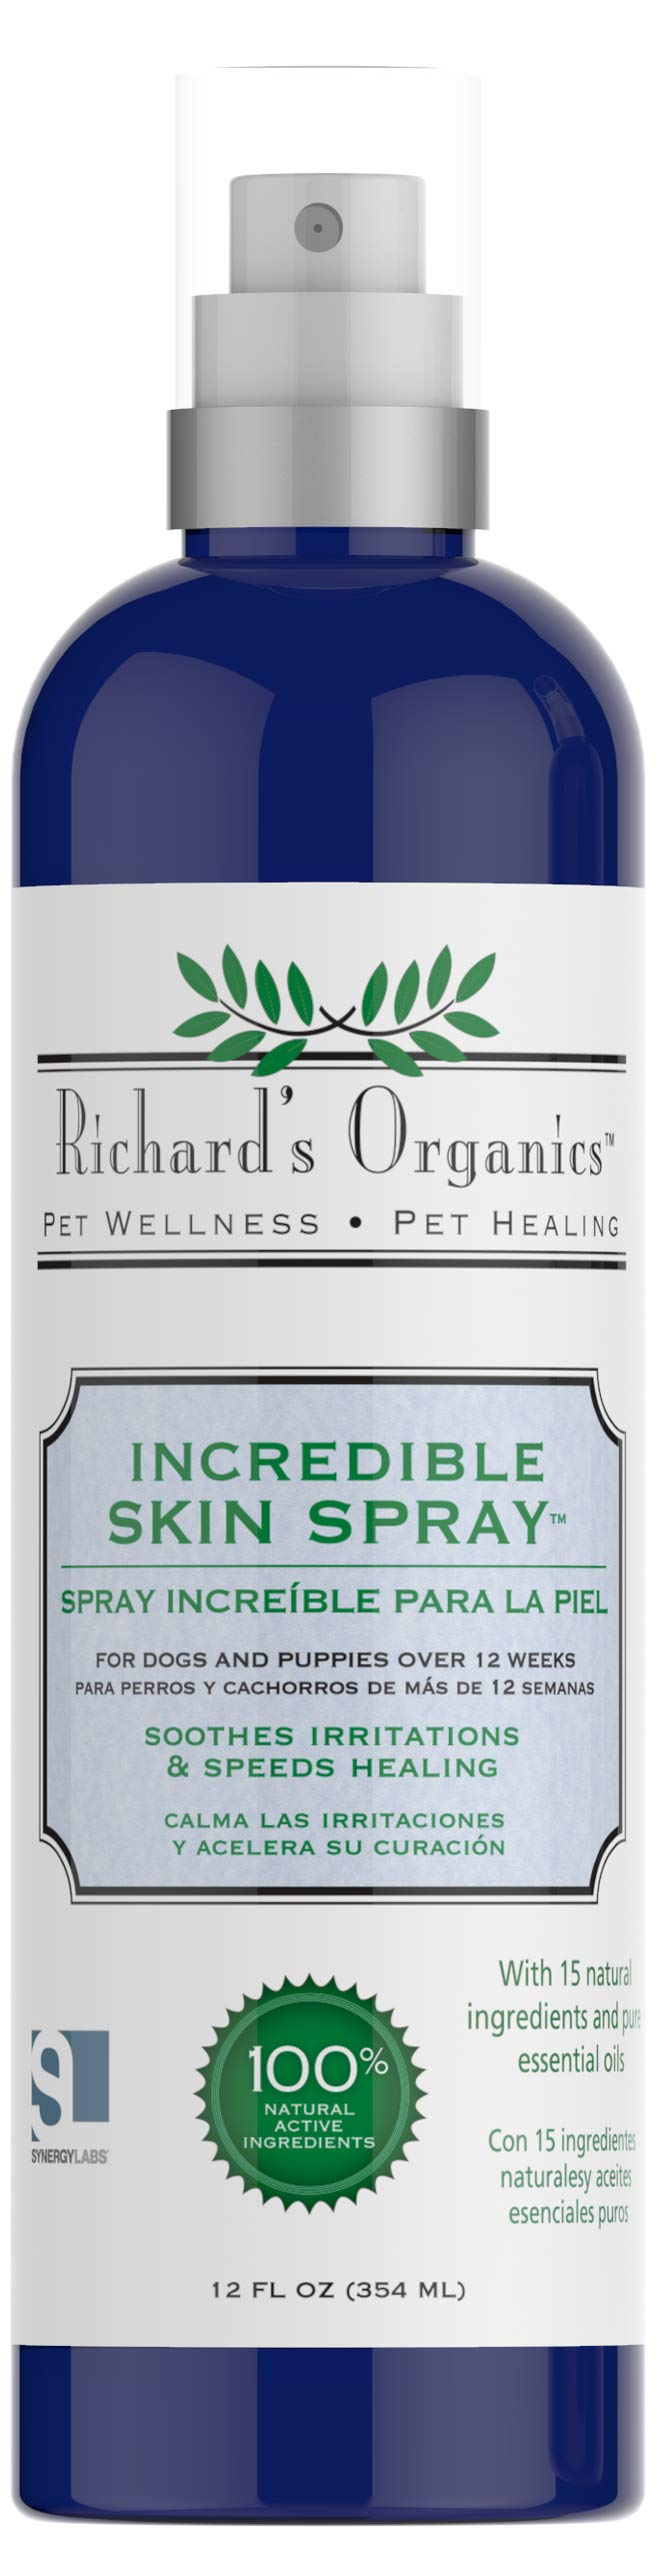 Richard's Organics Incredible Skin Spray for Dogs – Provides Relief from Skin Irritations Like Hot Spots, Dry Skin, Insect Bites and More – Speeds Healing, Fast Acting -100% Natural Active Ingredients (12 oz.)